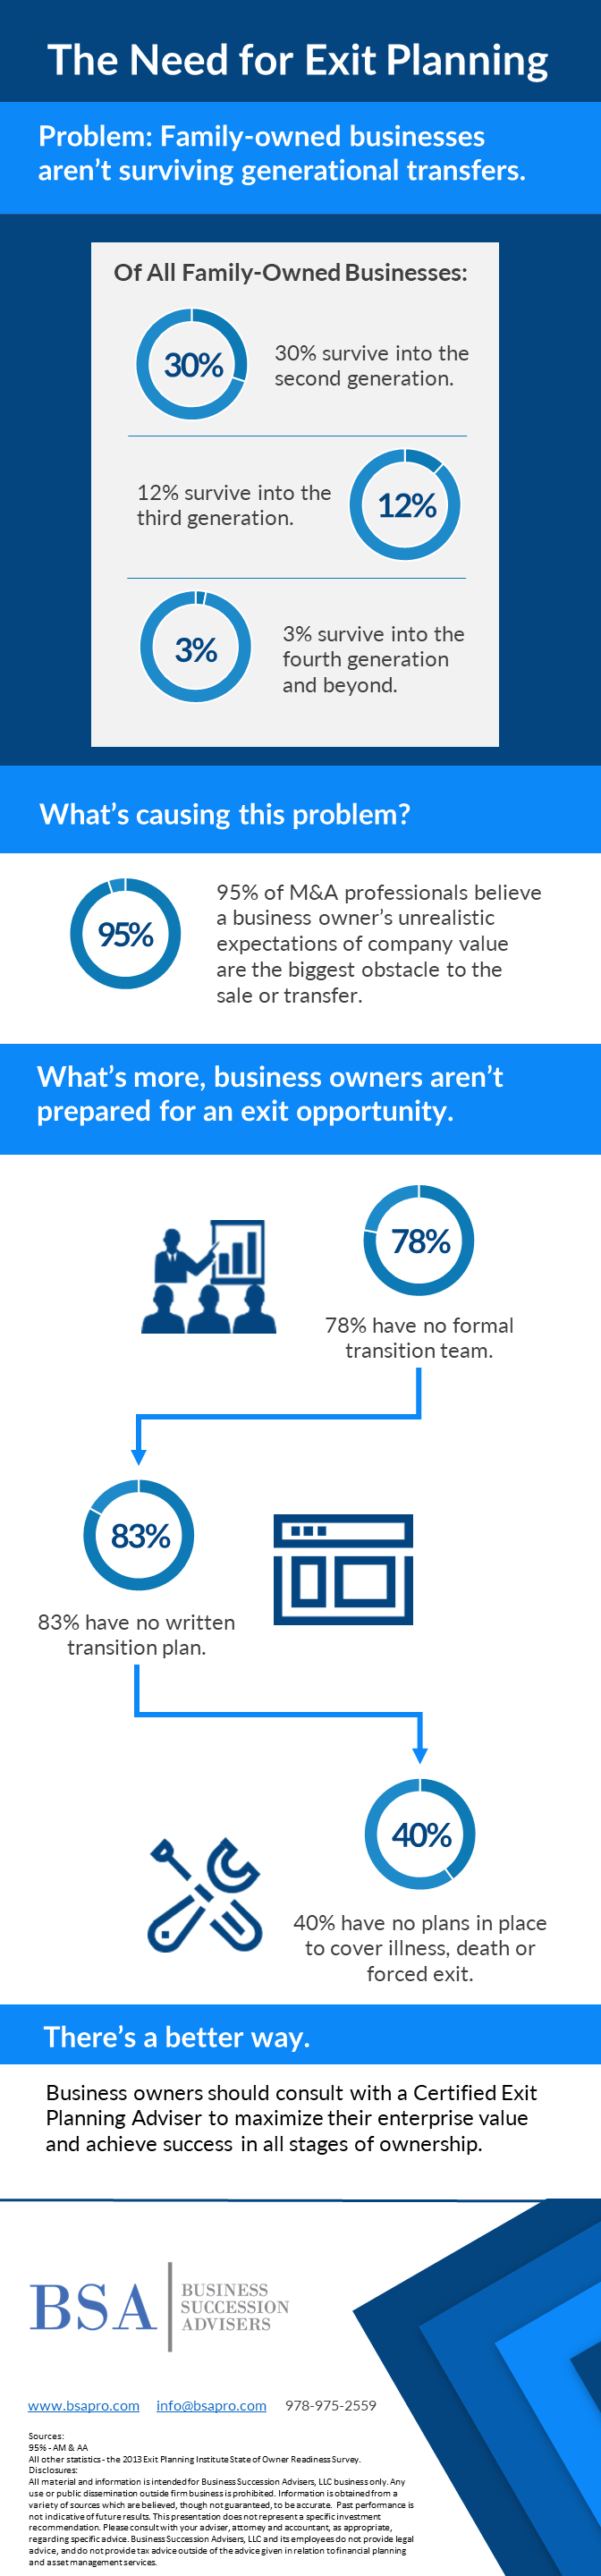 The Need for Exit Planning infographic from Business Succession Advisers, LLC.